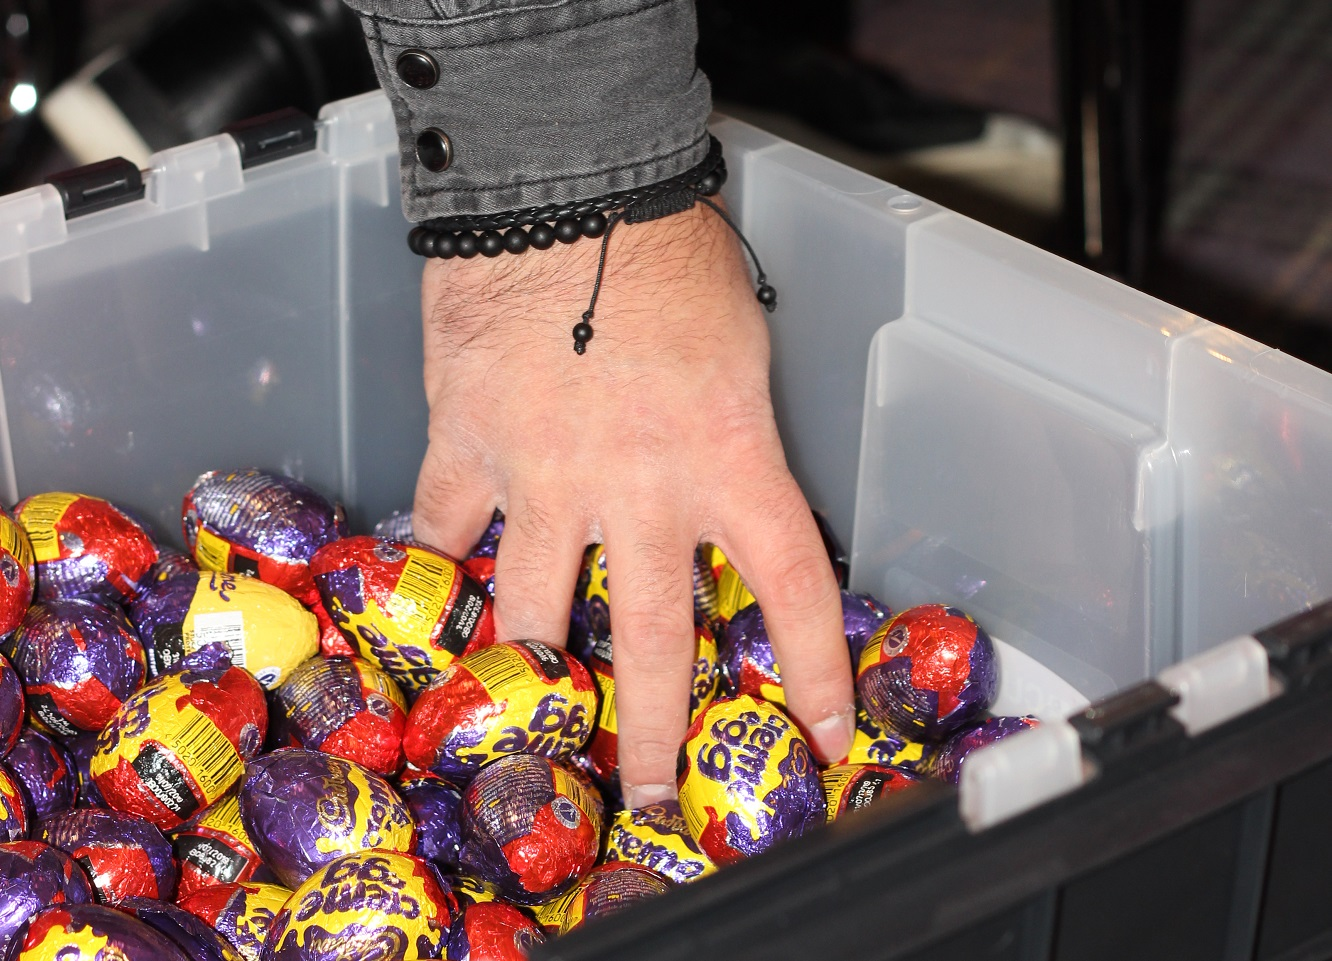 Hand grabs handful of creme eggs